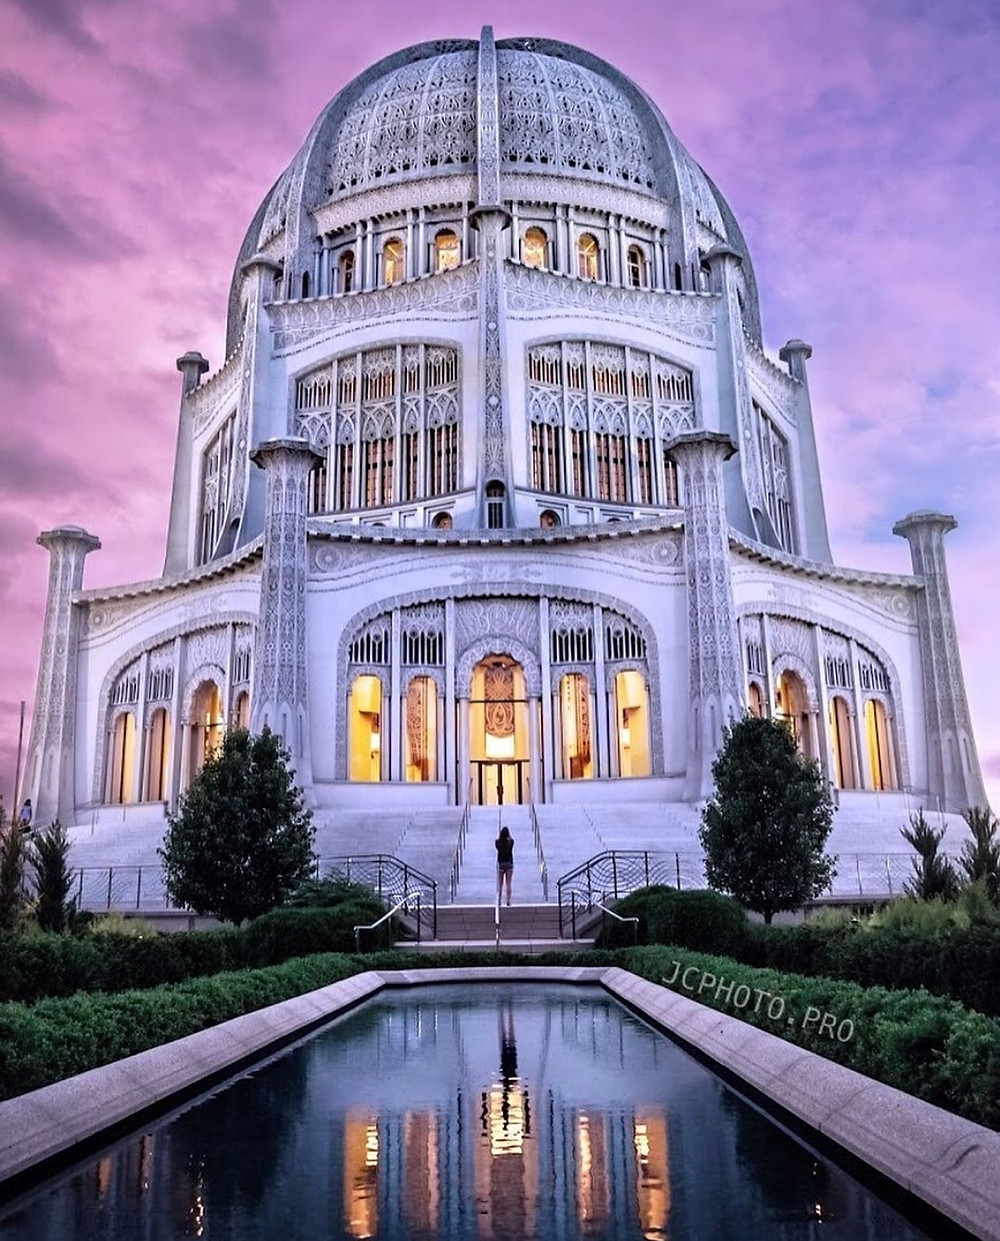 Sunset at Baha'i House of Worship in Chicago